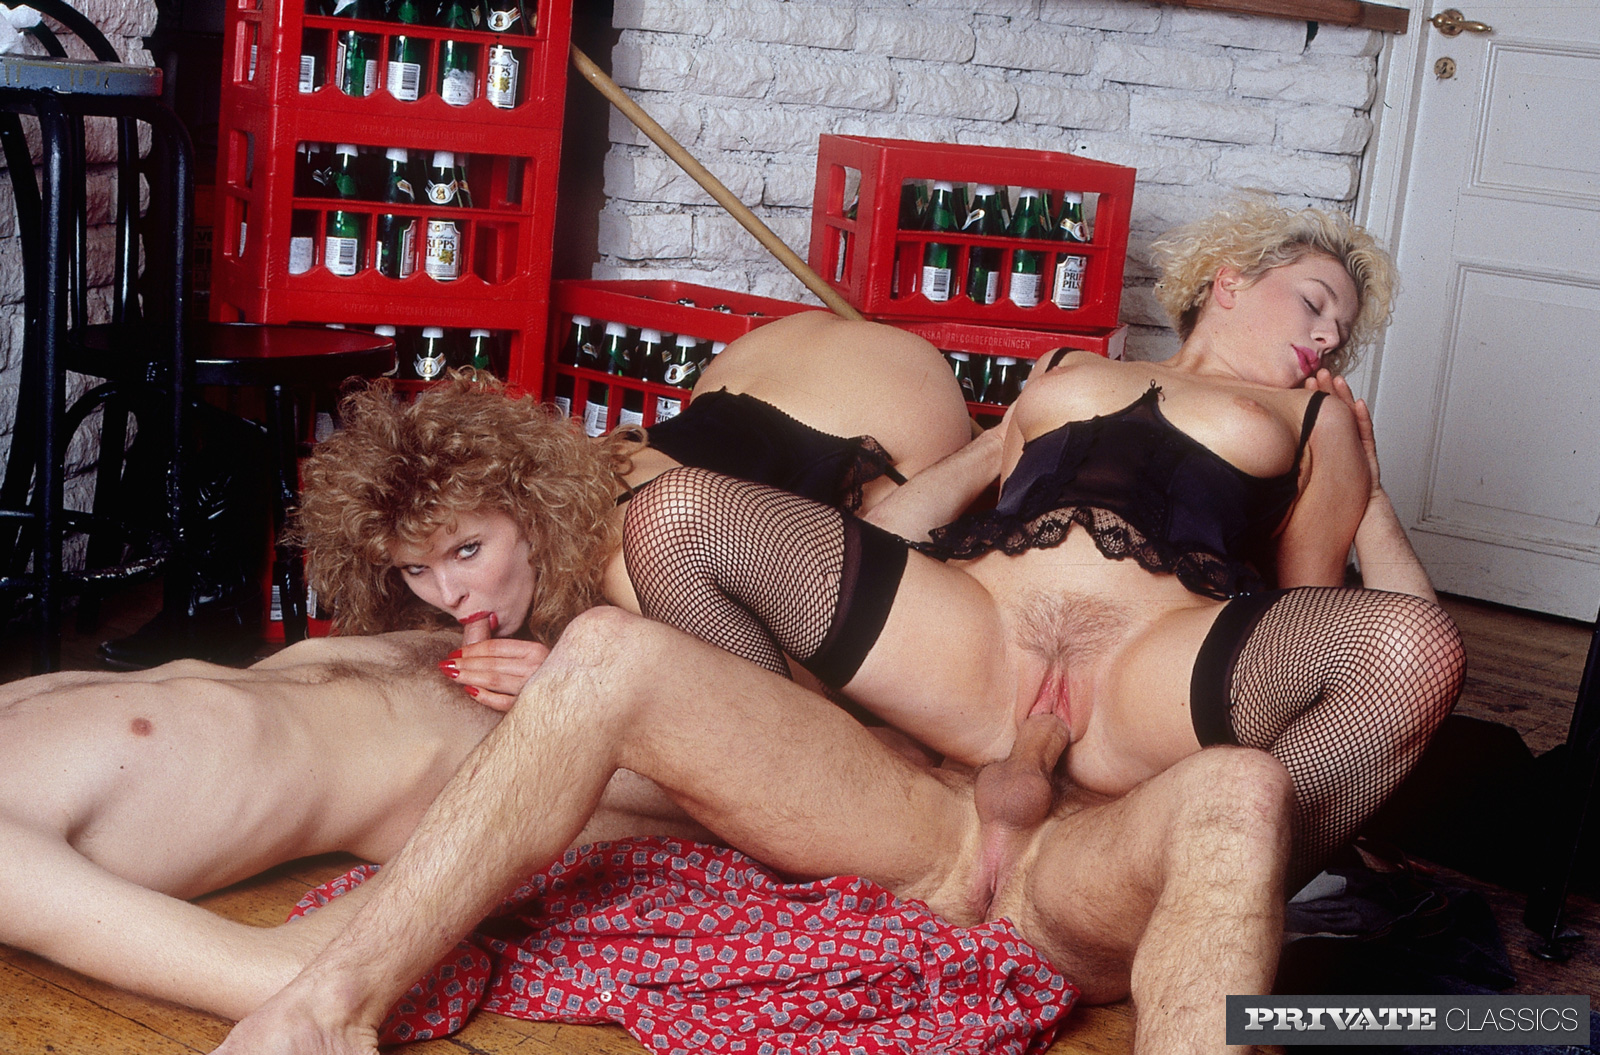 thru-sexy-mature-women-sex-film-lowrider